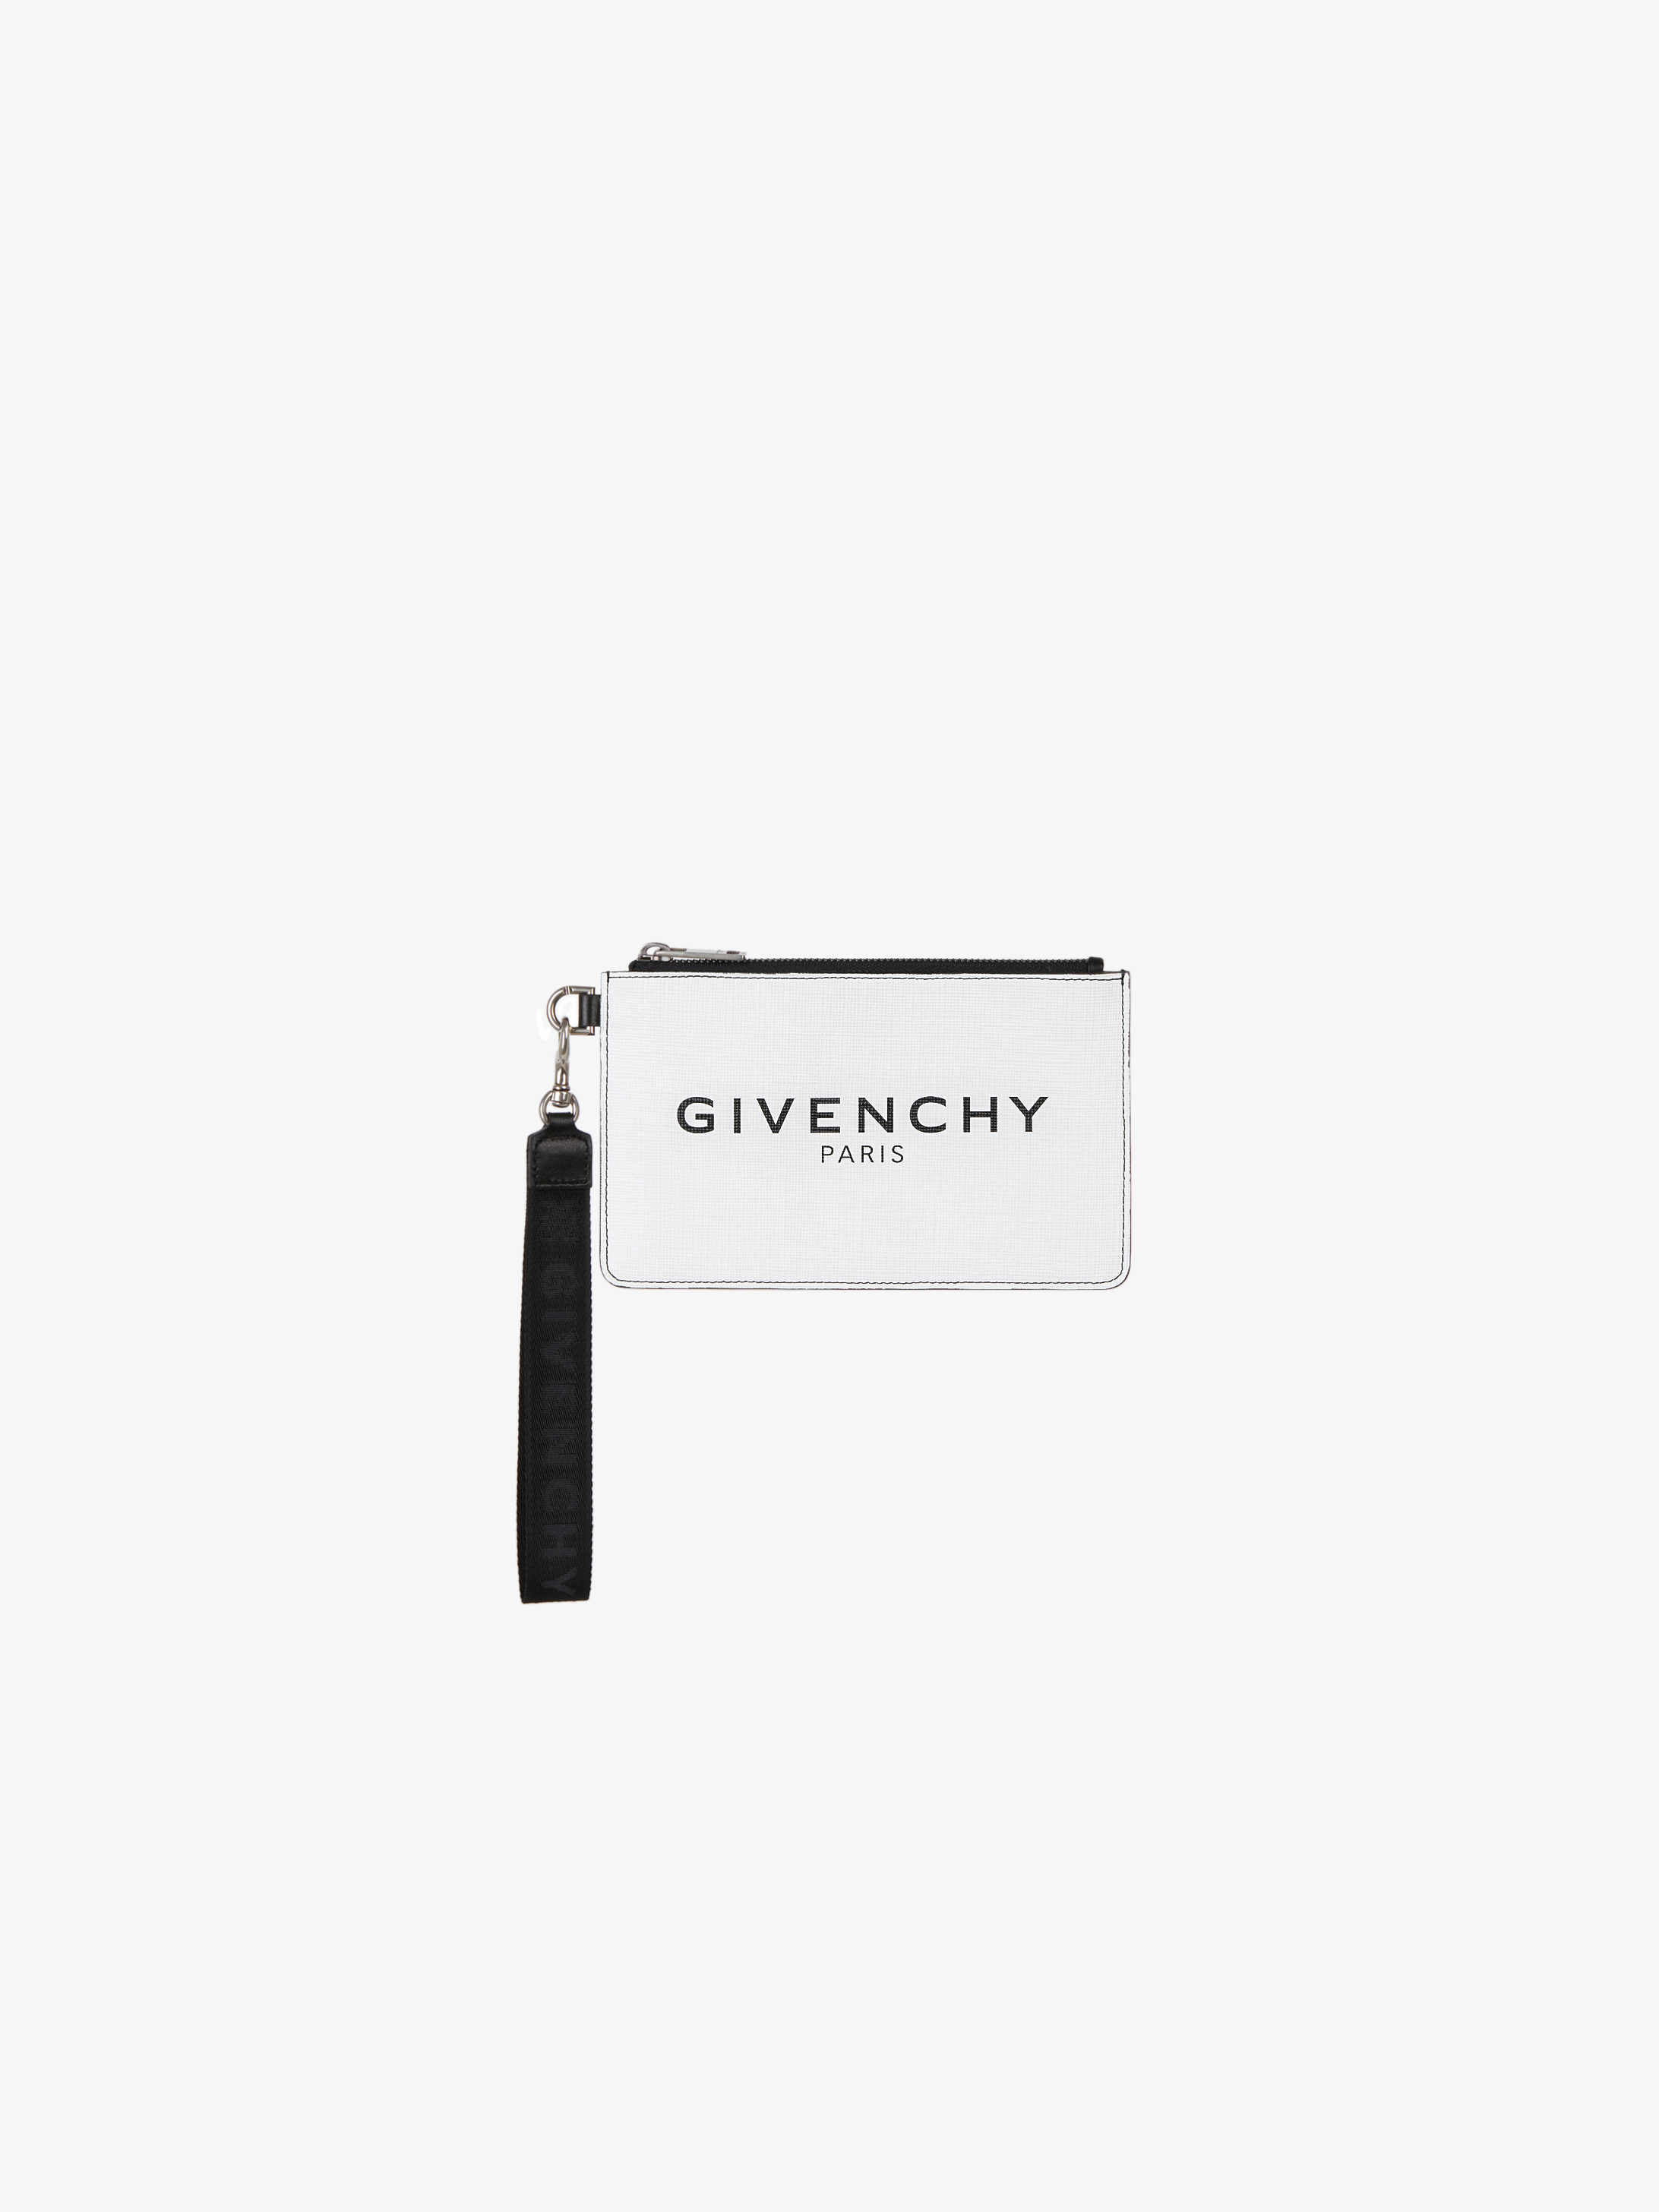 GIVENCHY PARIS glow in the dark mini pouch